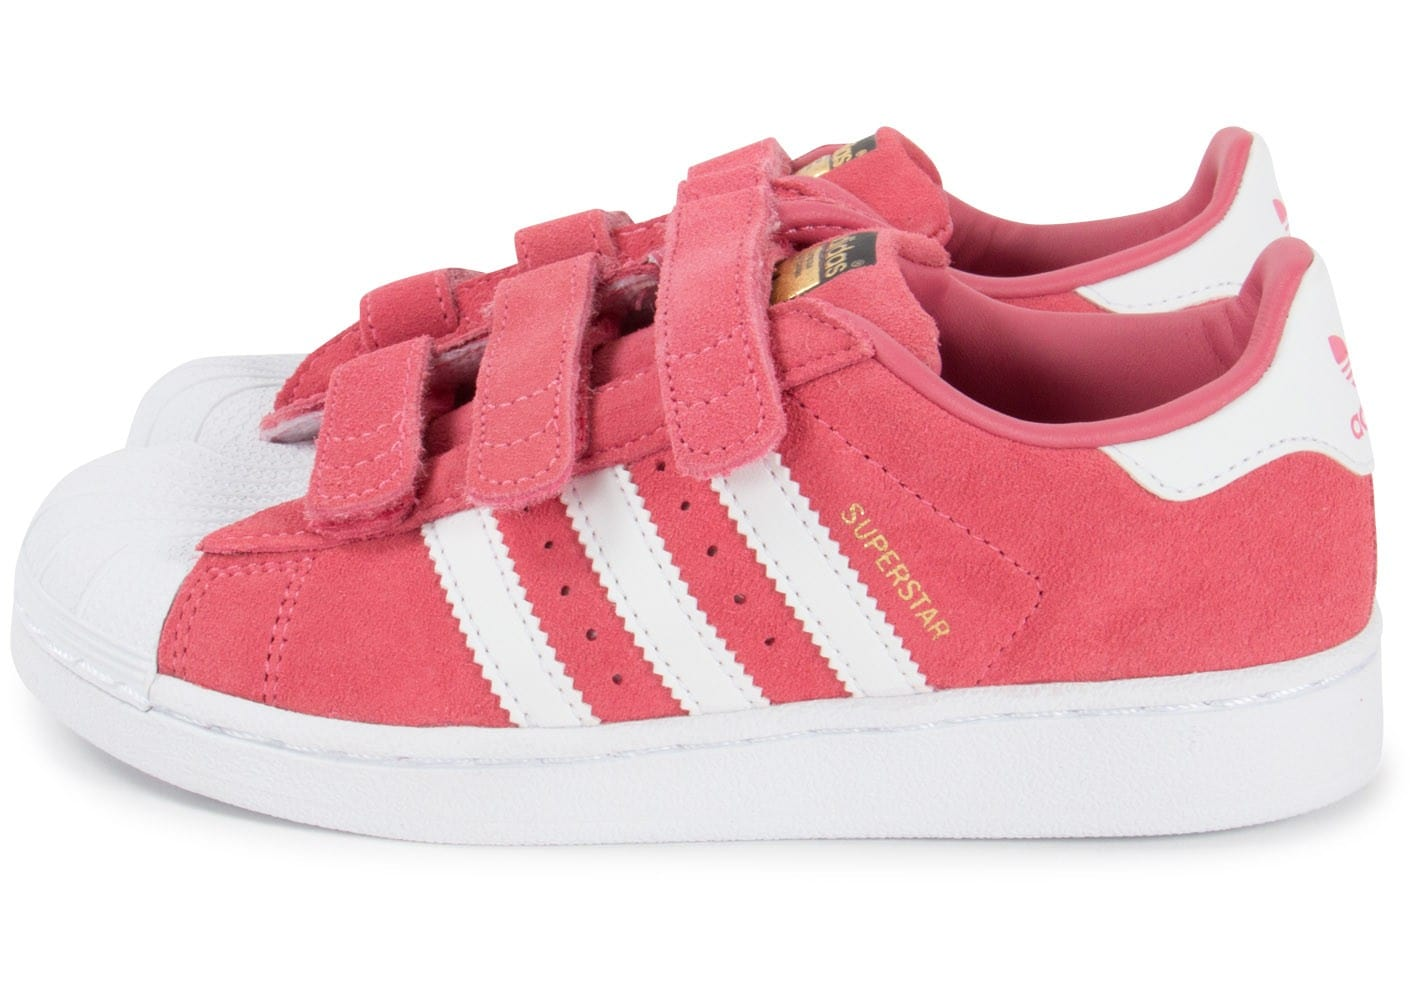 Enfant Chaussure Adidas Adidas Superstar Superstar Superstar